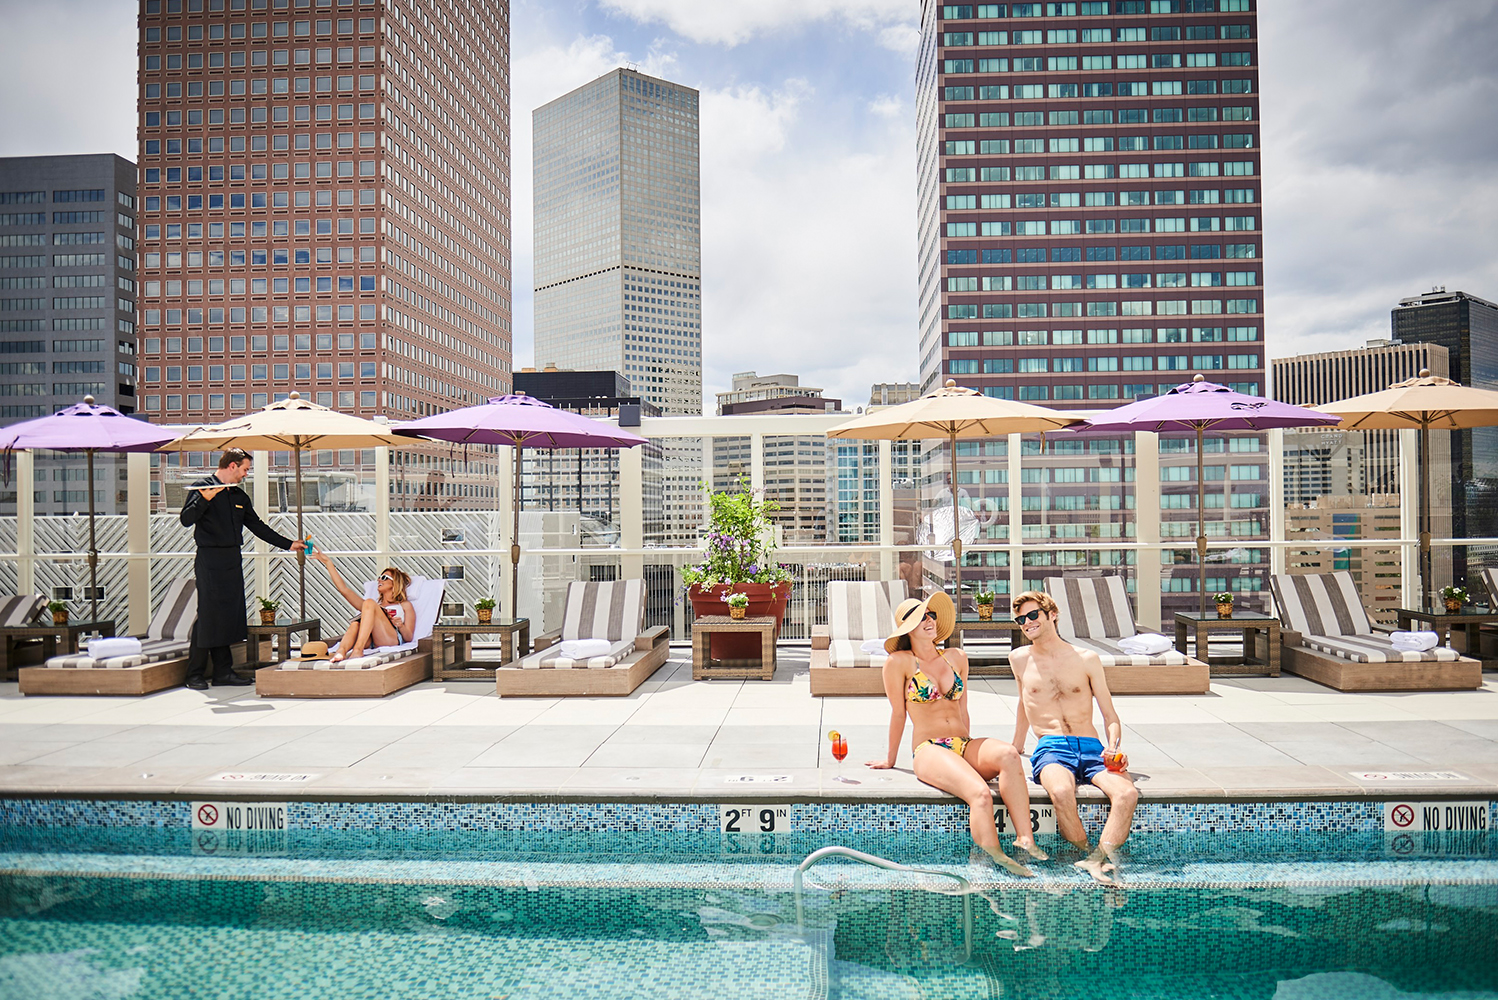 The Warwick Denver has a rooftop outdoor heated swimming pool and sun deck rooftop bar with views of the city and the mountains.